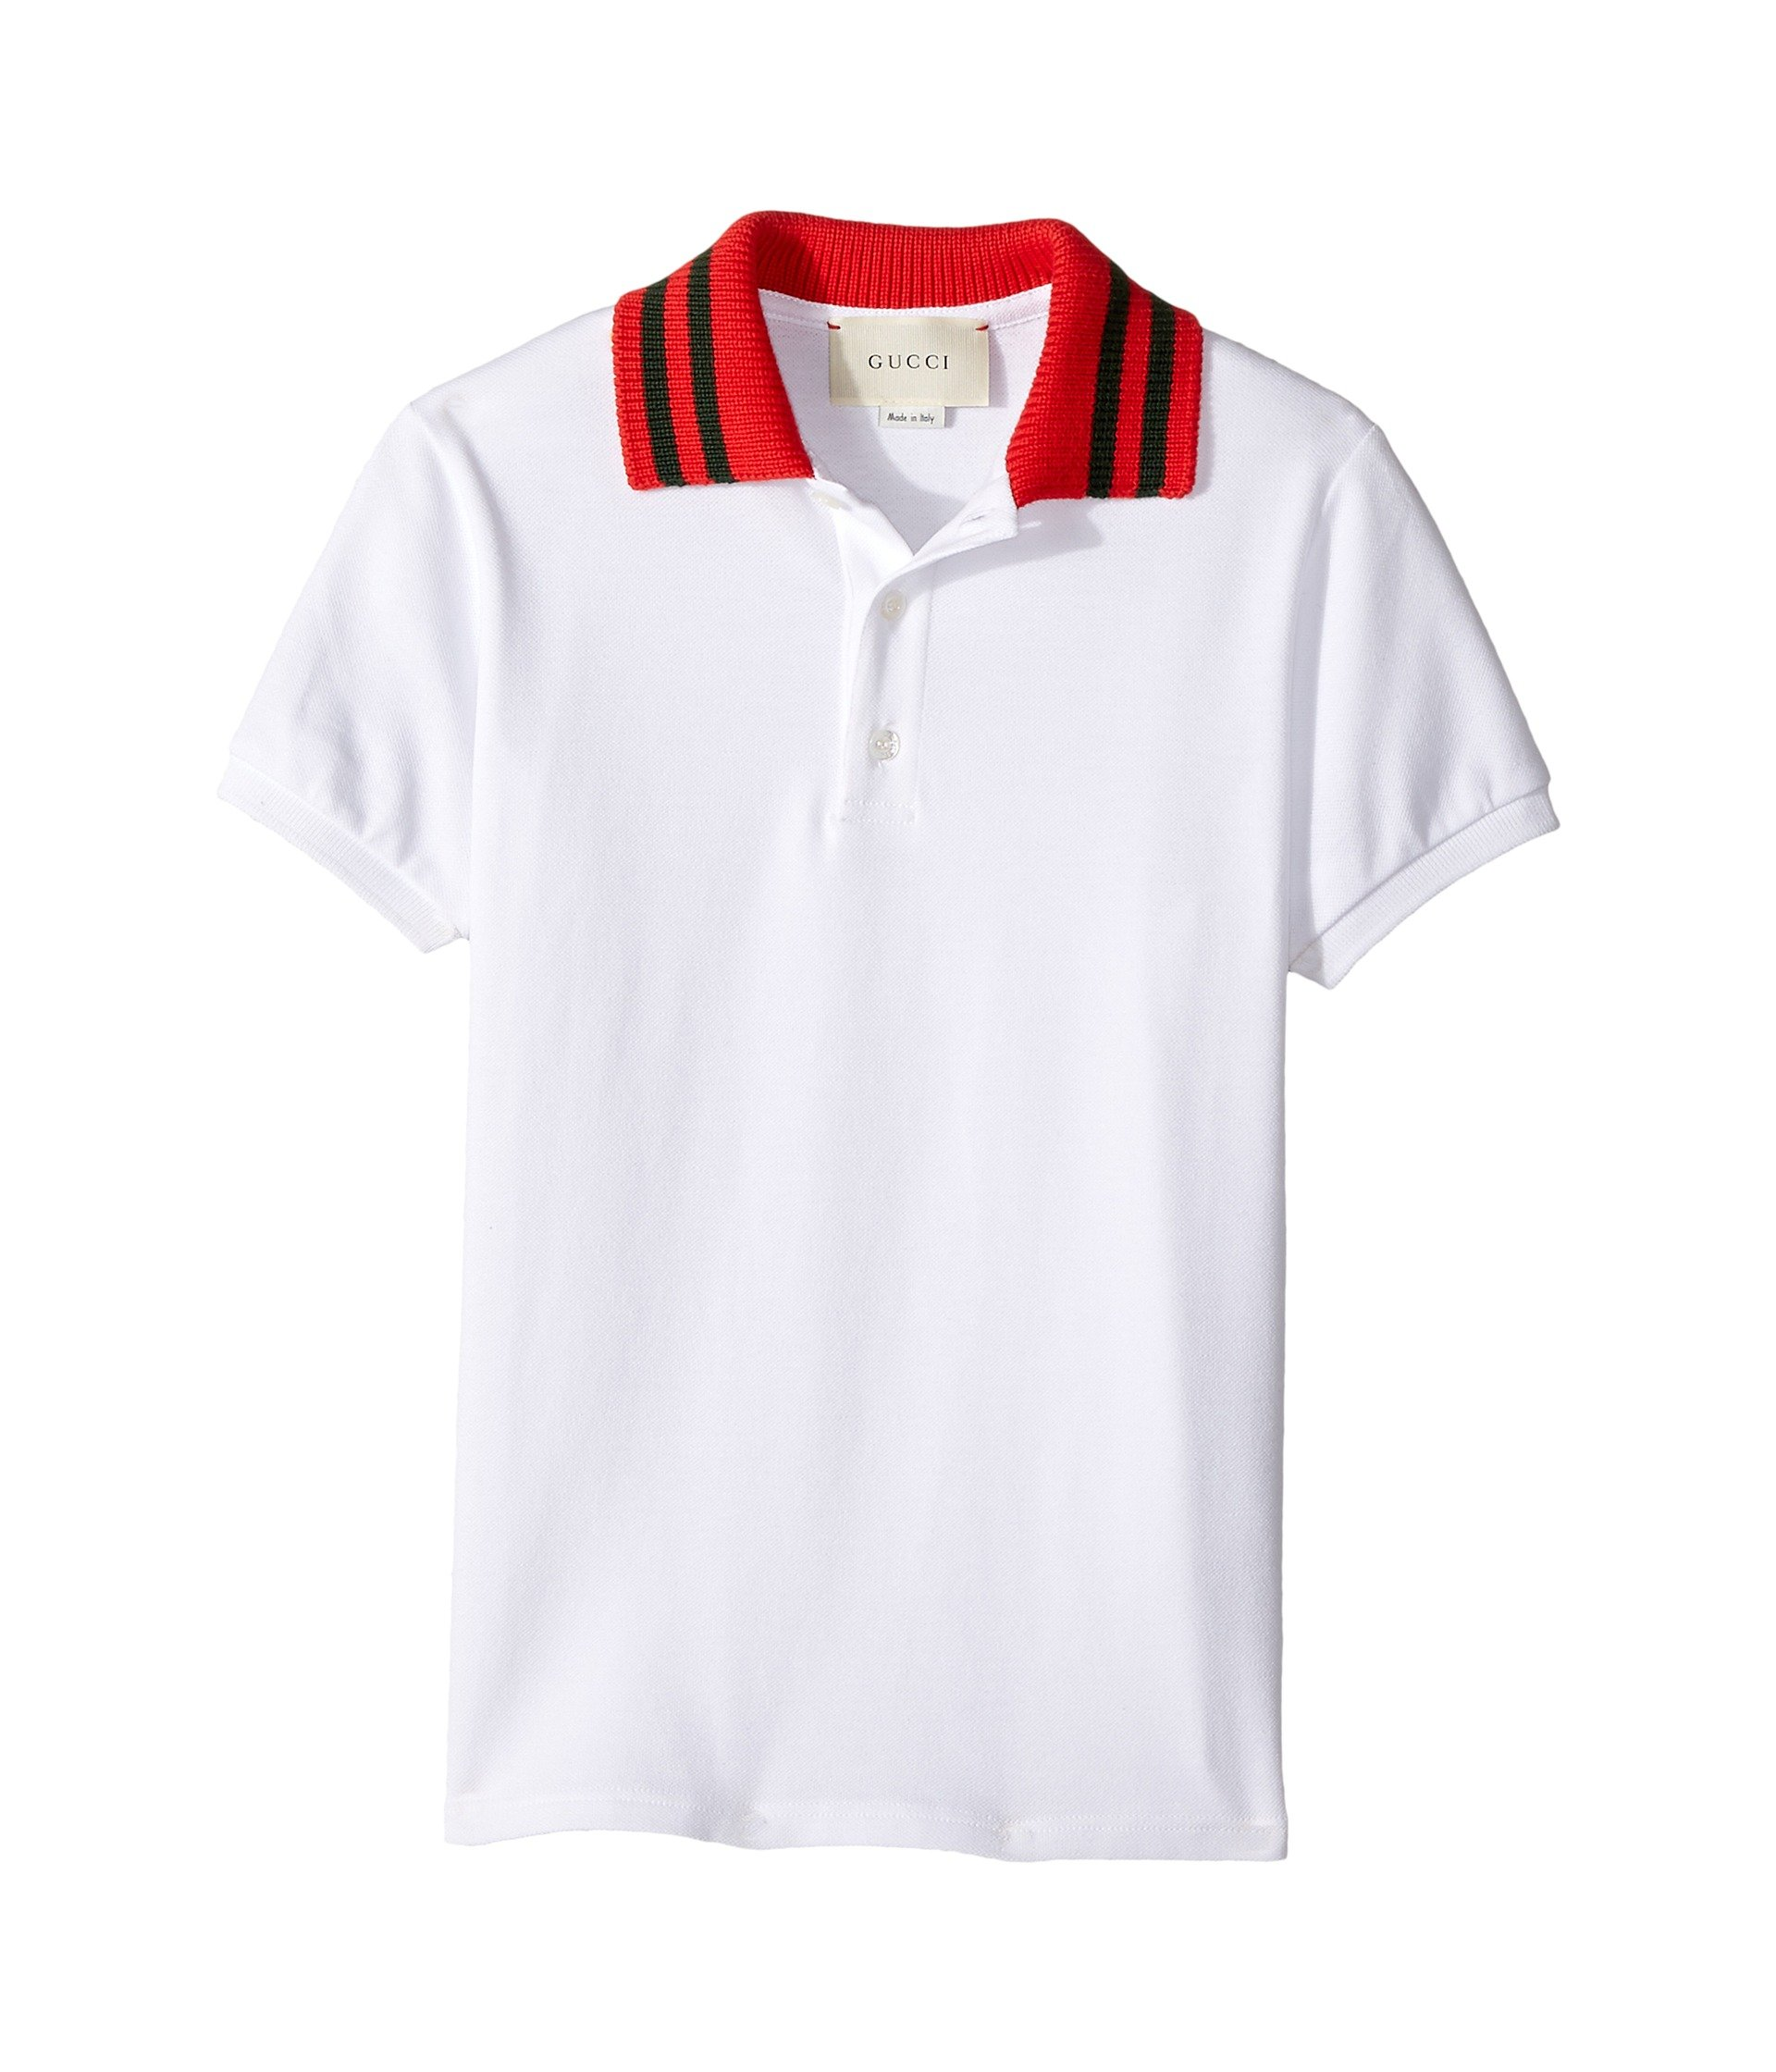 dd33e0f1 Polo Shirts Amazon - DREAMWORKS